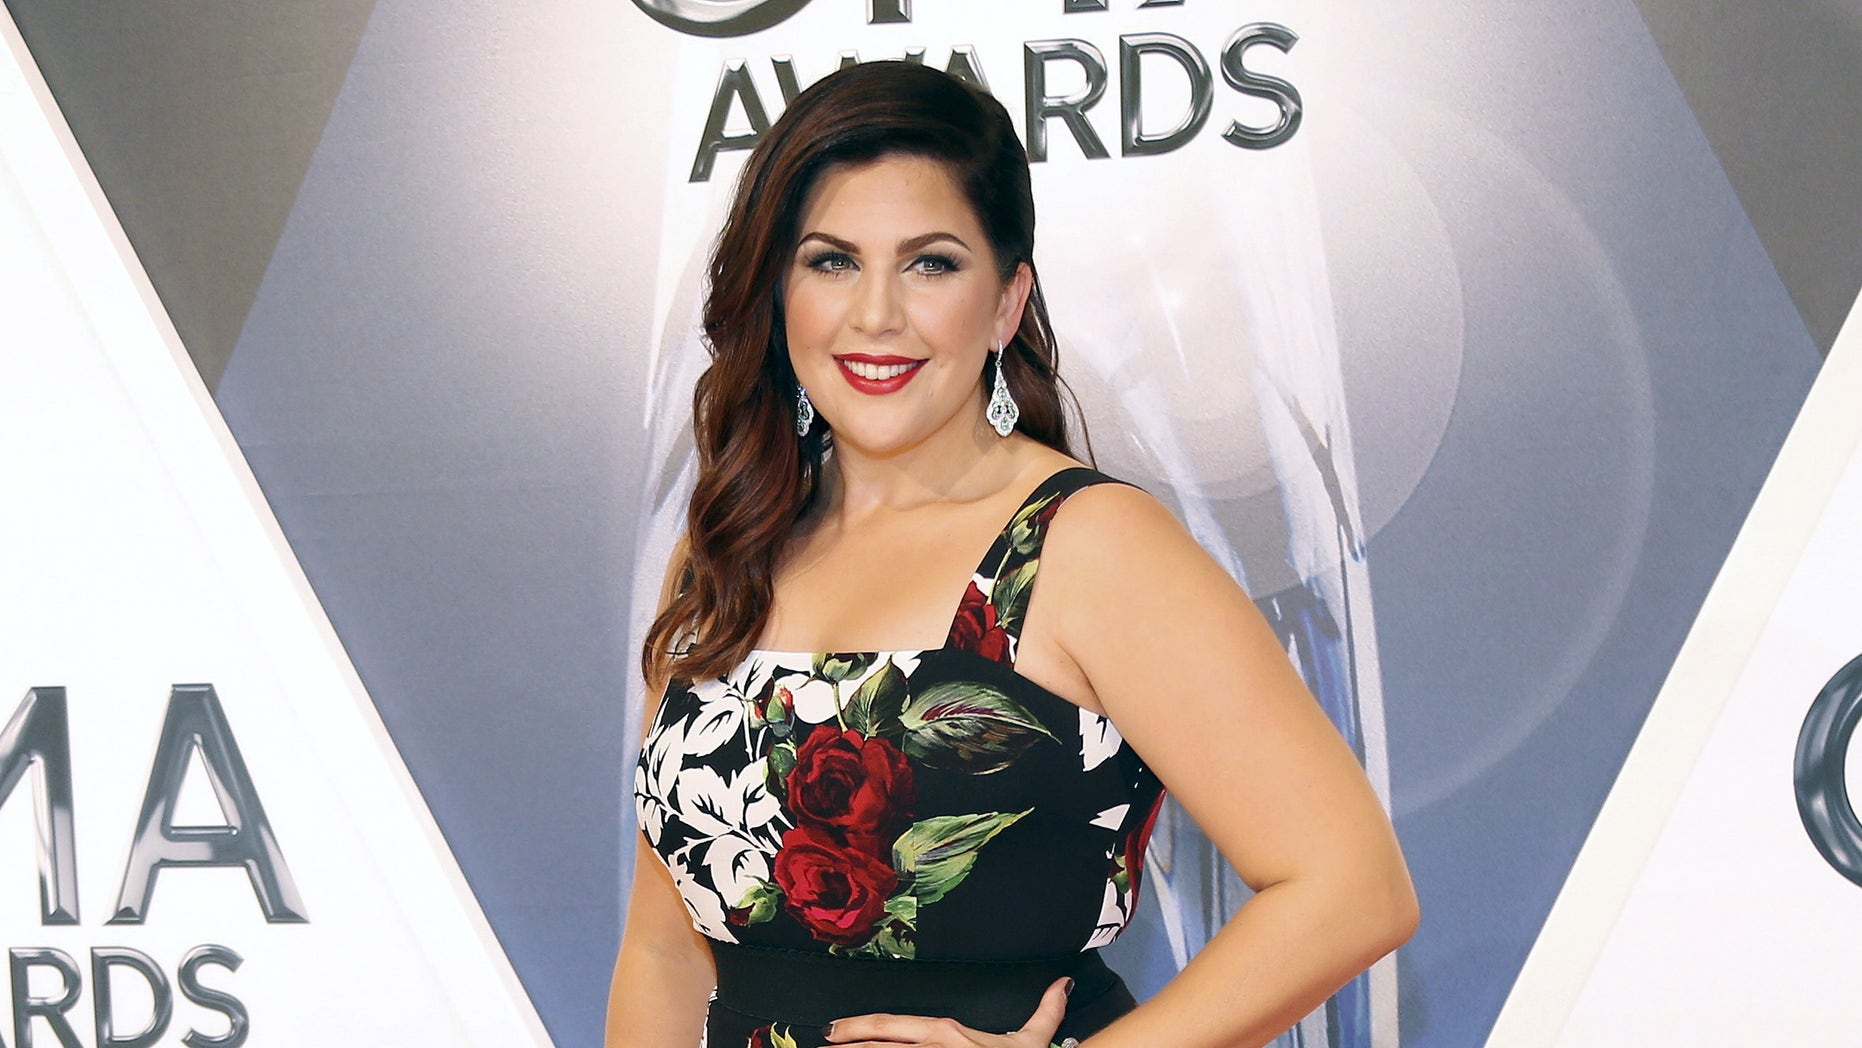 Singer Hillary Scott of Lady Antebellum arrives at the 49th Annual Country Music Association Awards in Nashville, Tennessee November 4, 2015.  REUTERS/Jamie Gilliam        EDITORIAL USE ONLY. NO RESALES. NO ARCHIVE - RTX1UT95